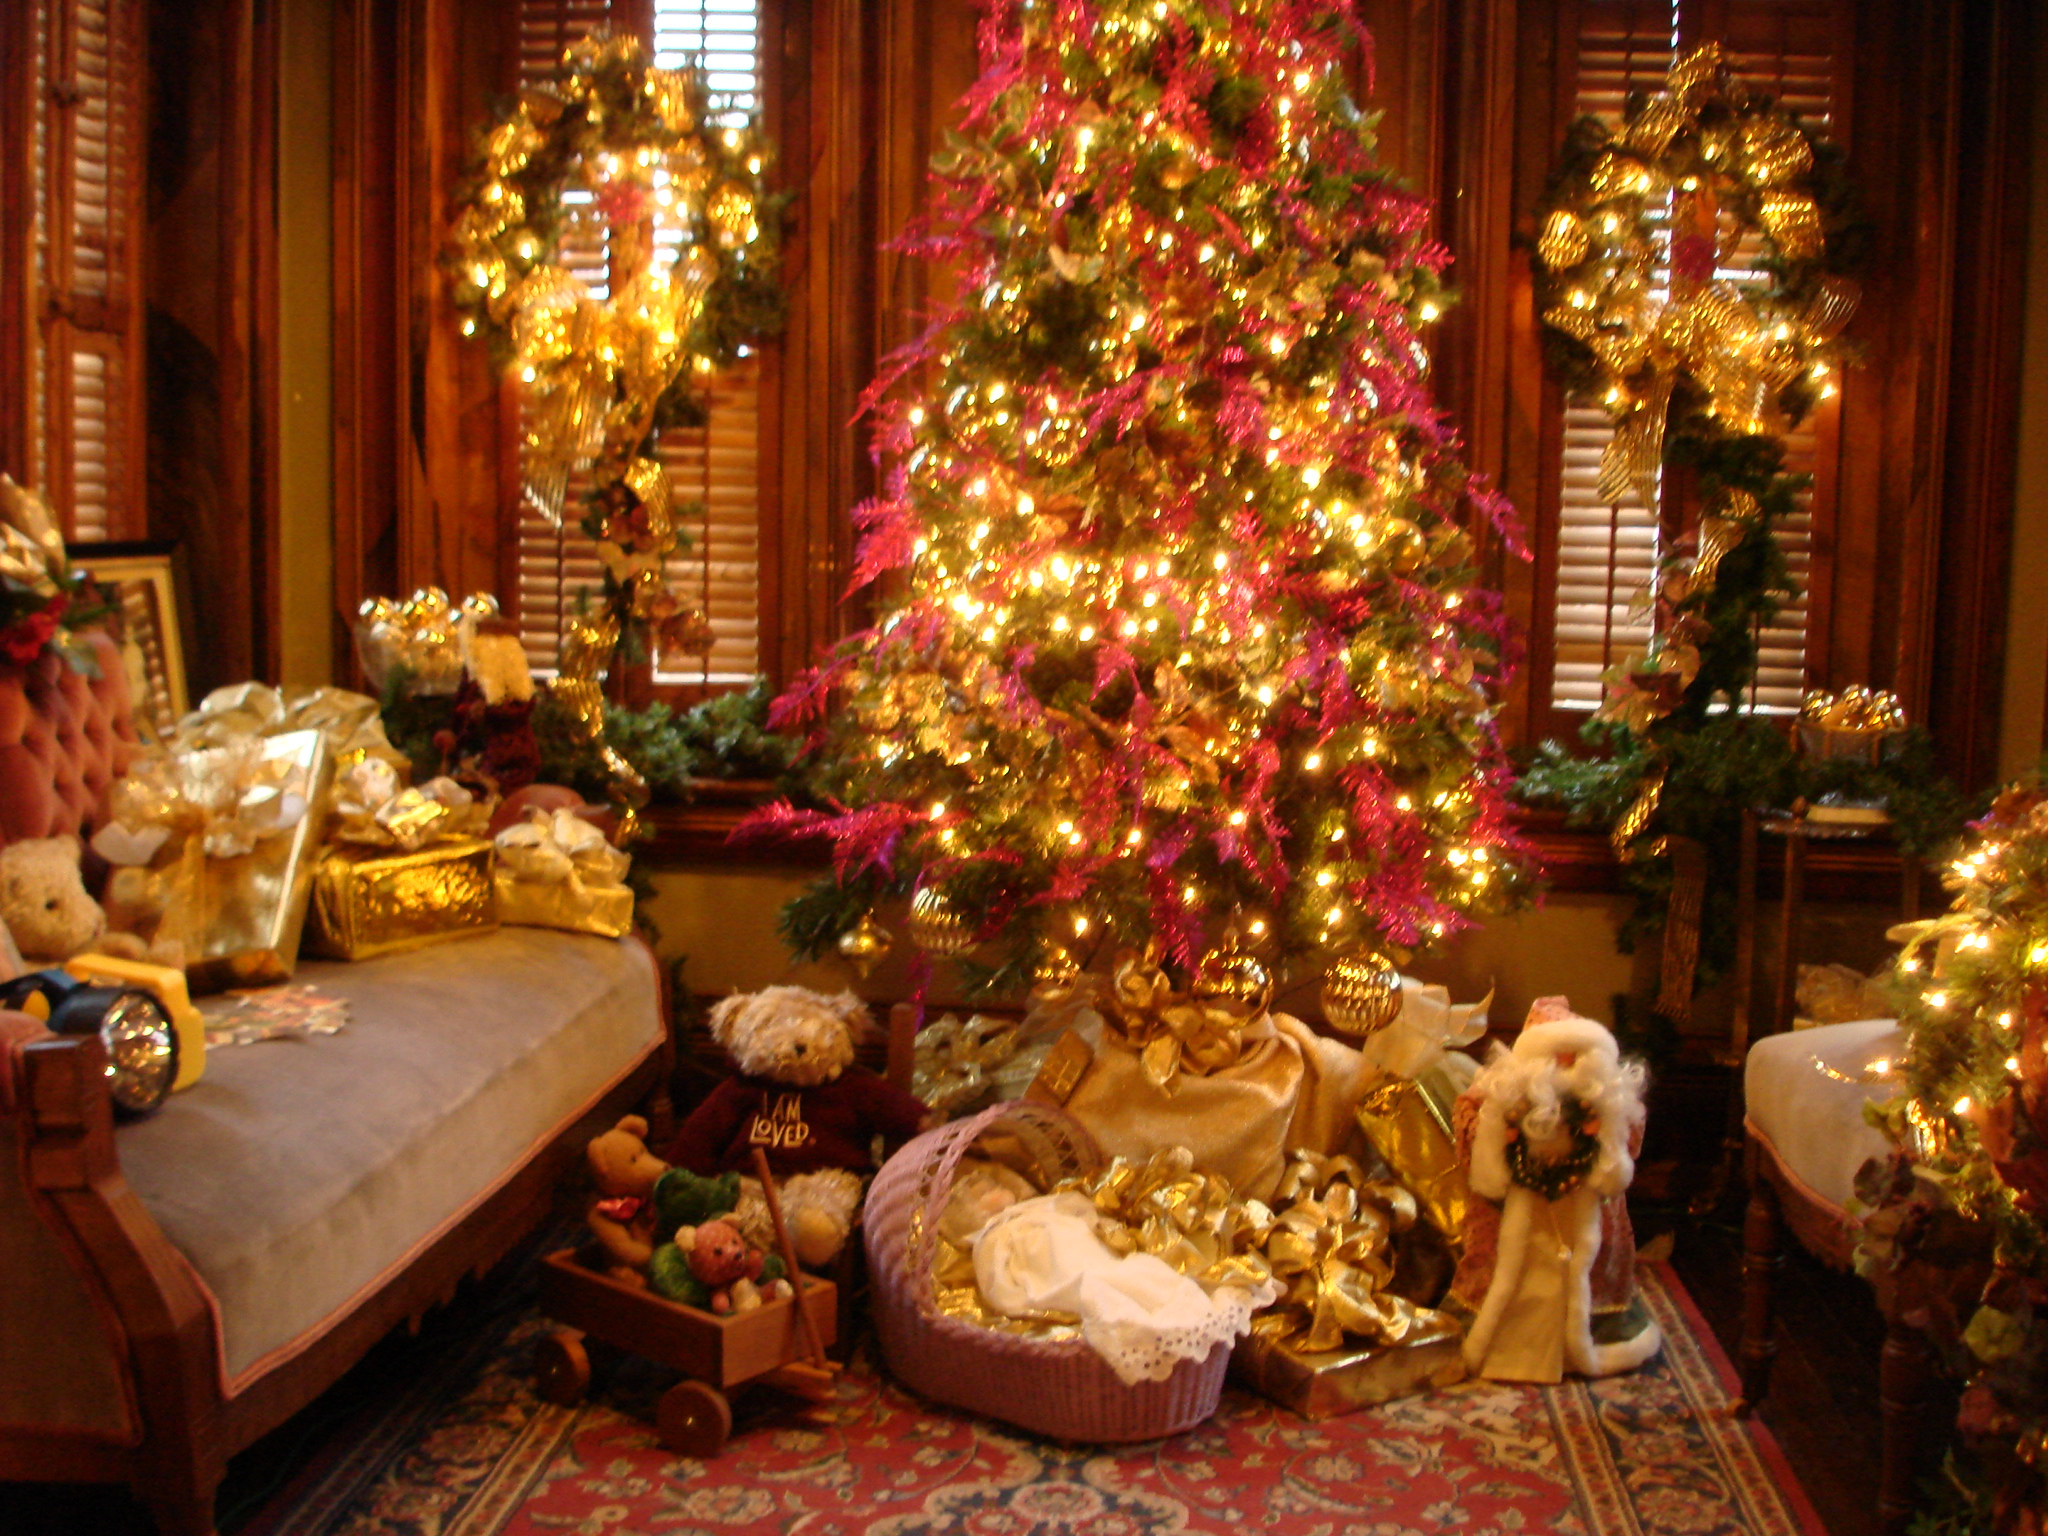 vaile-mansion-christmas-interior